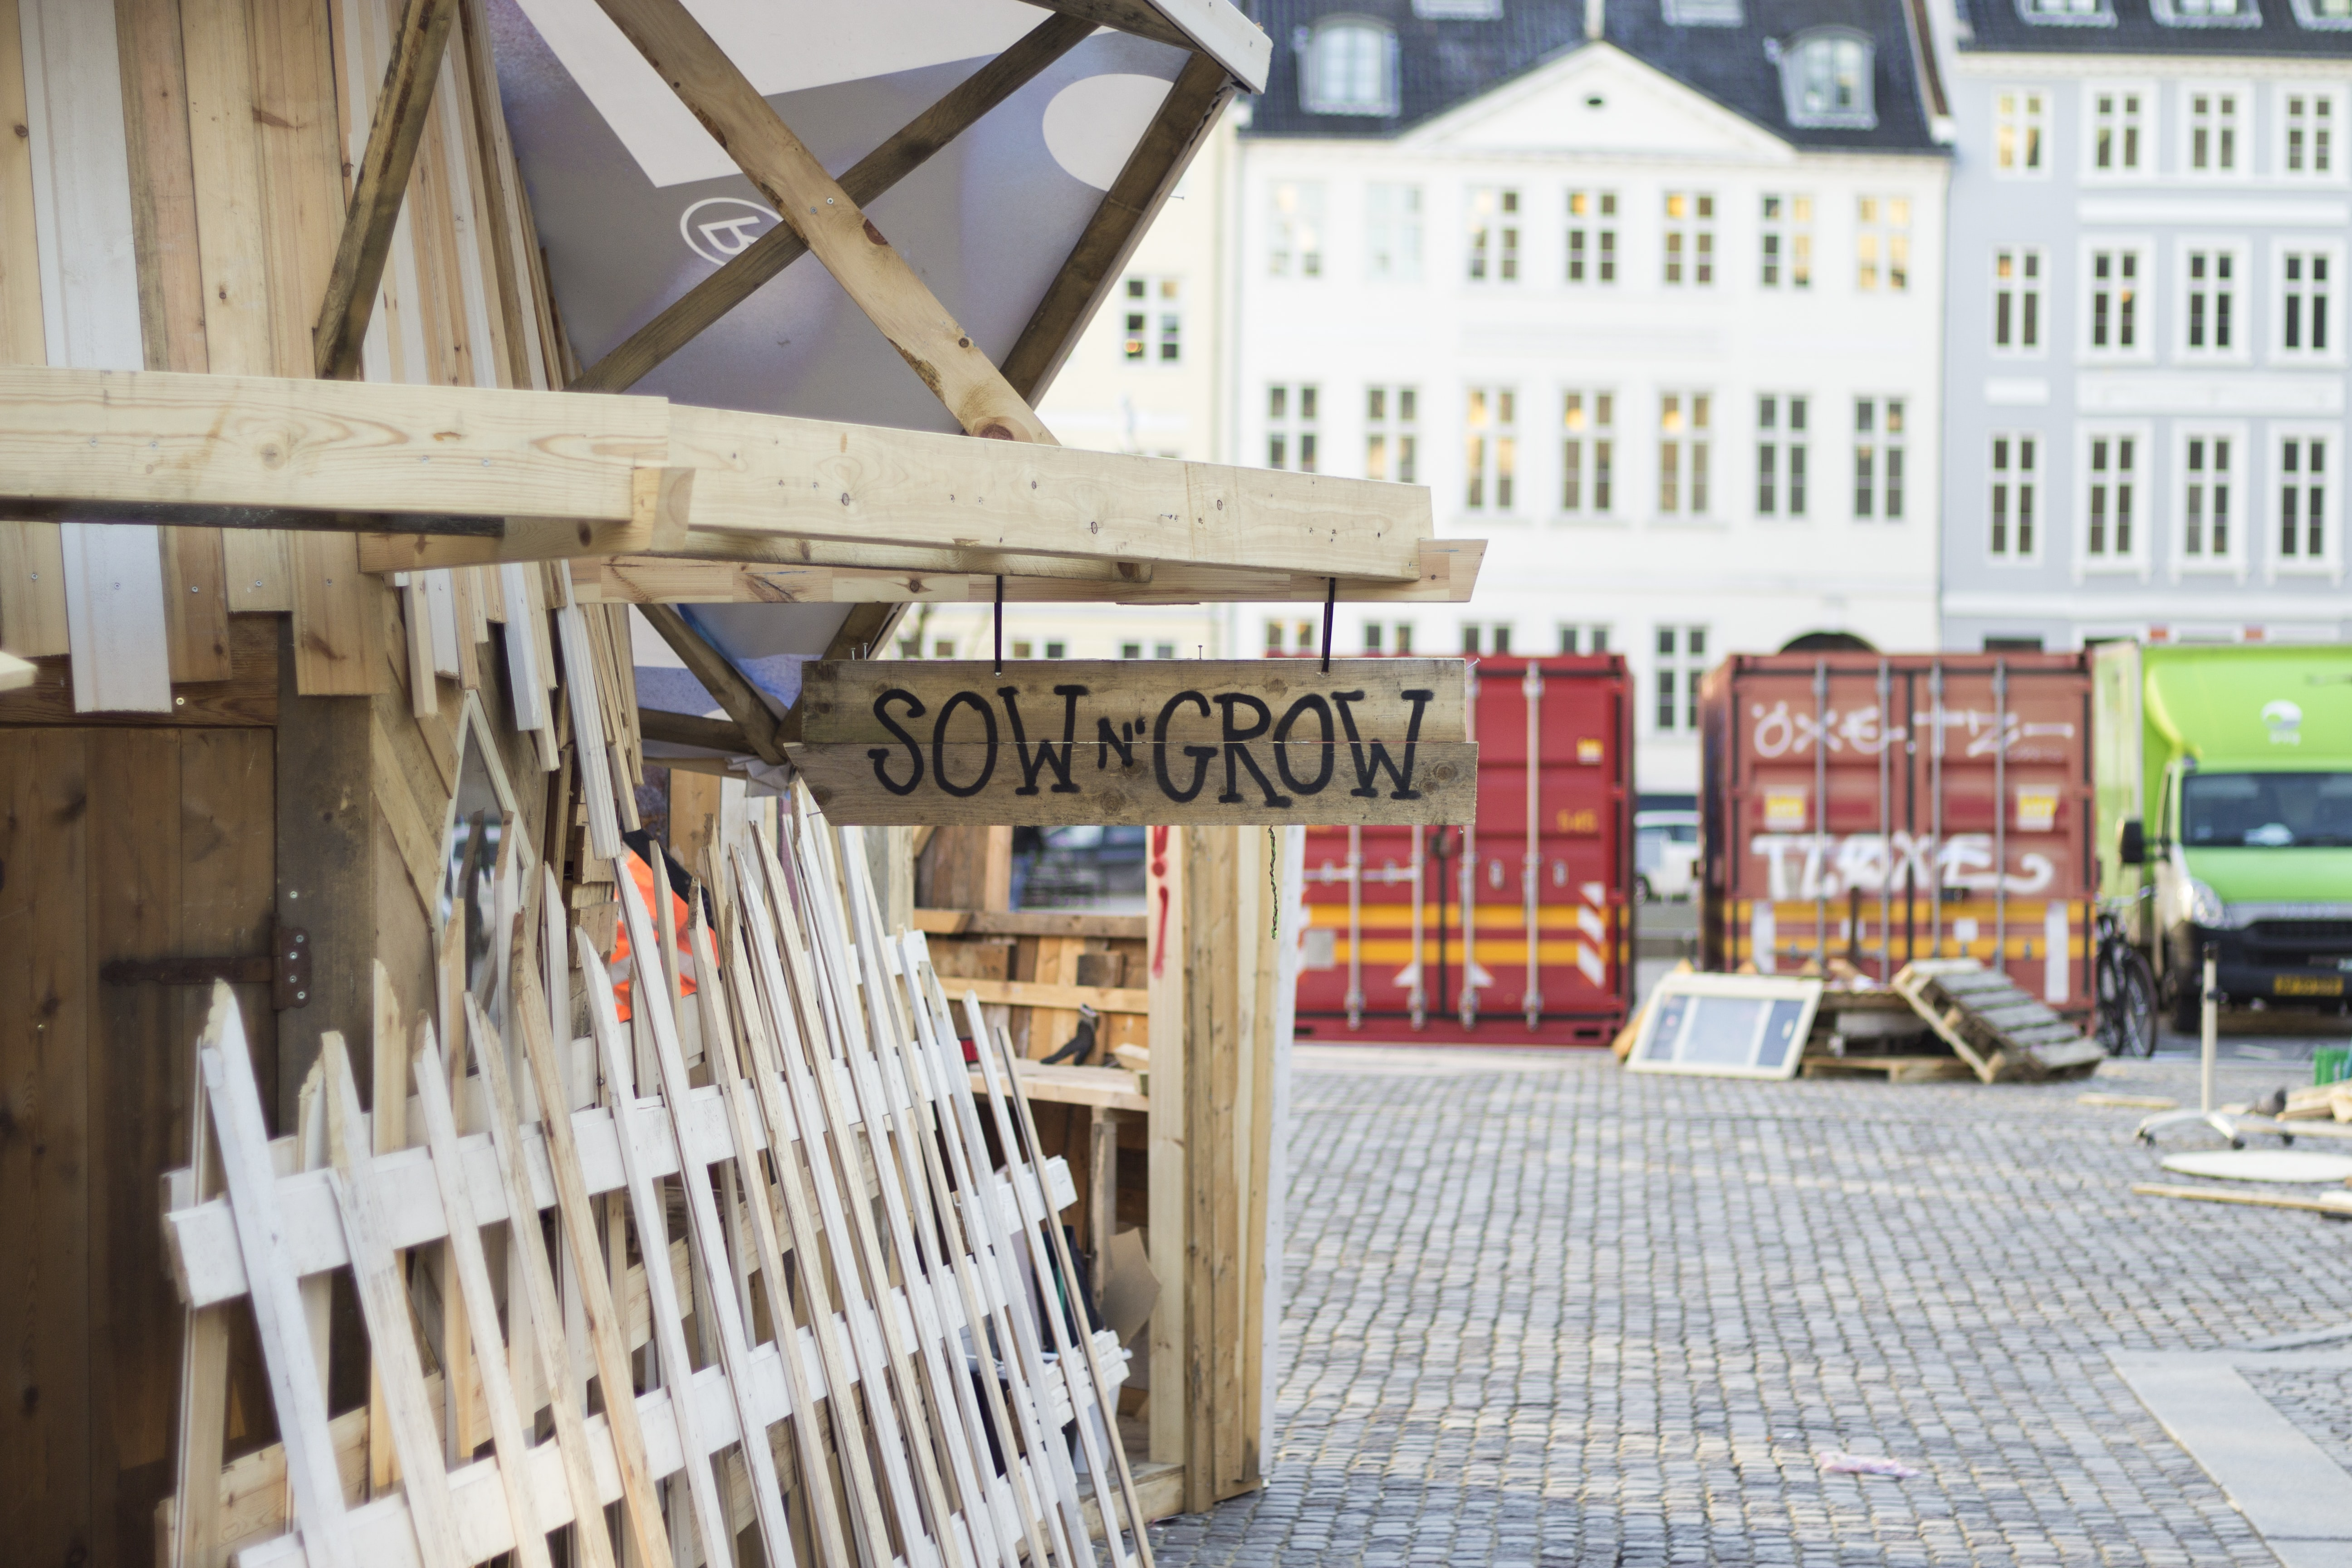 Sow N' Grow signage hanged on wooden log